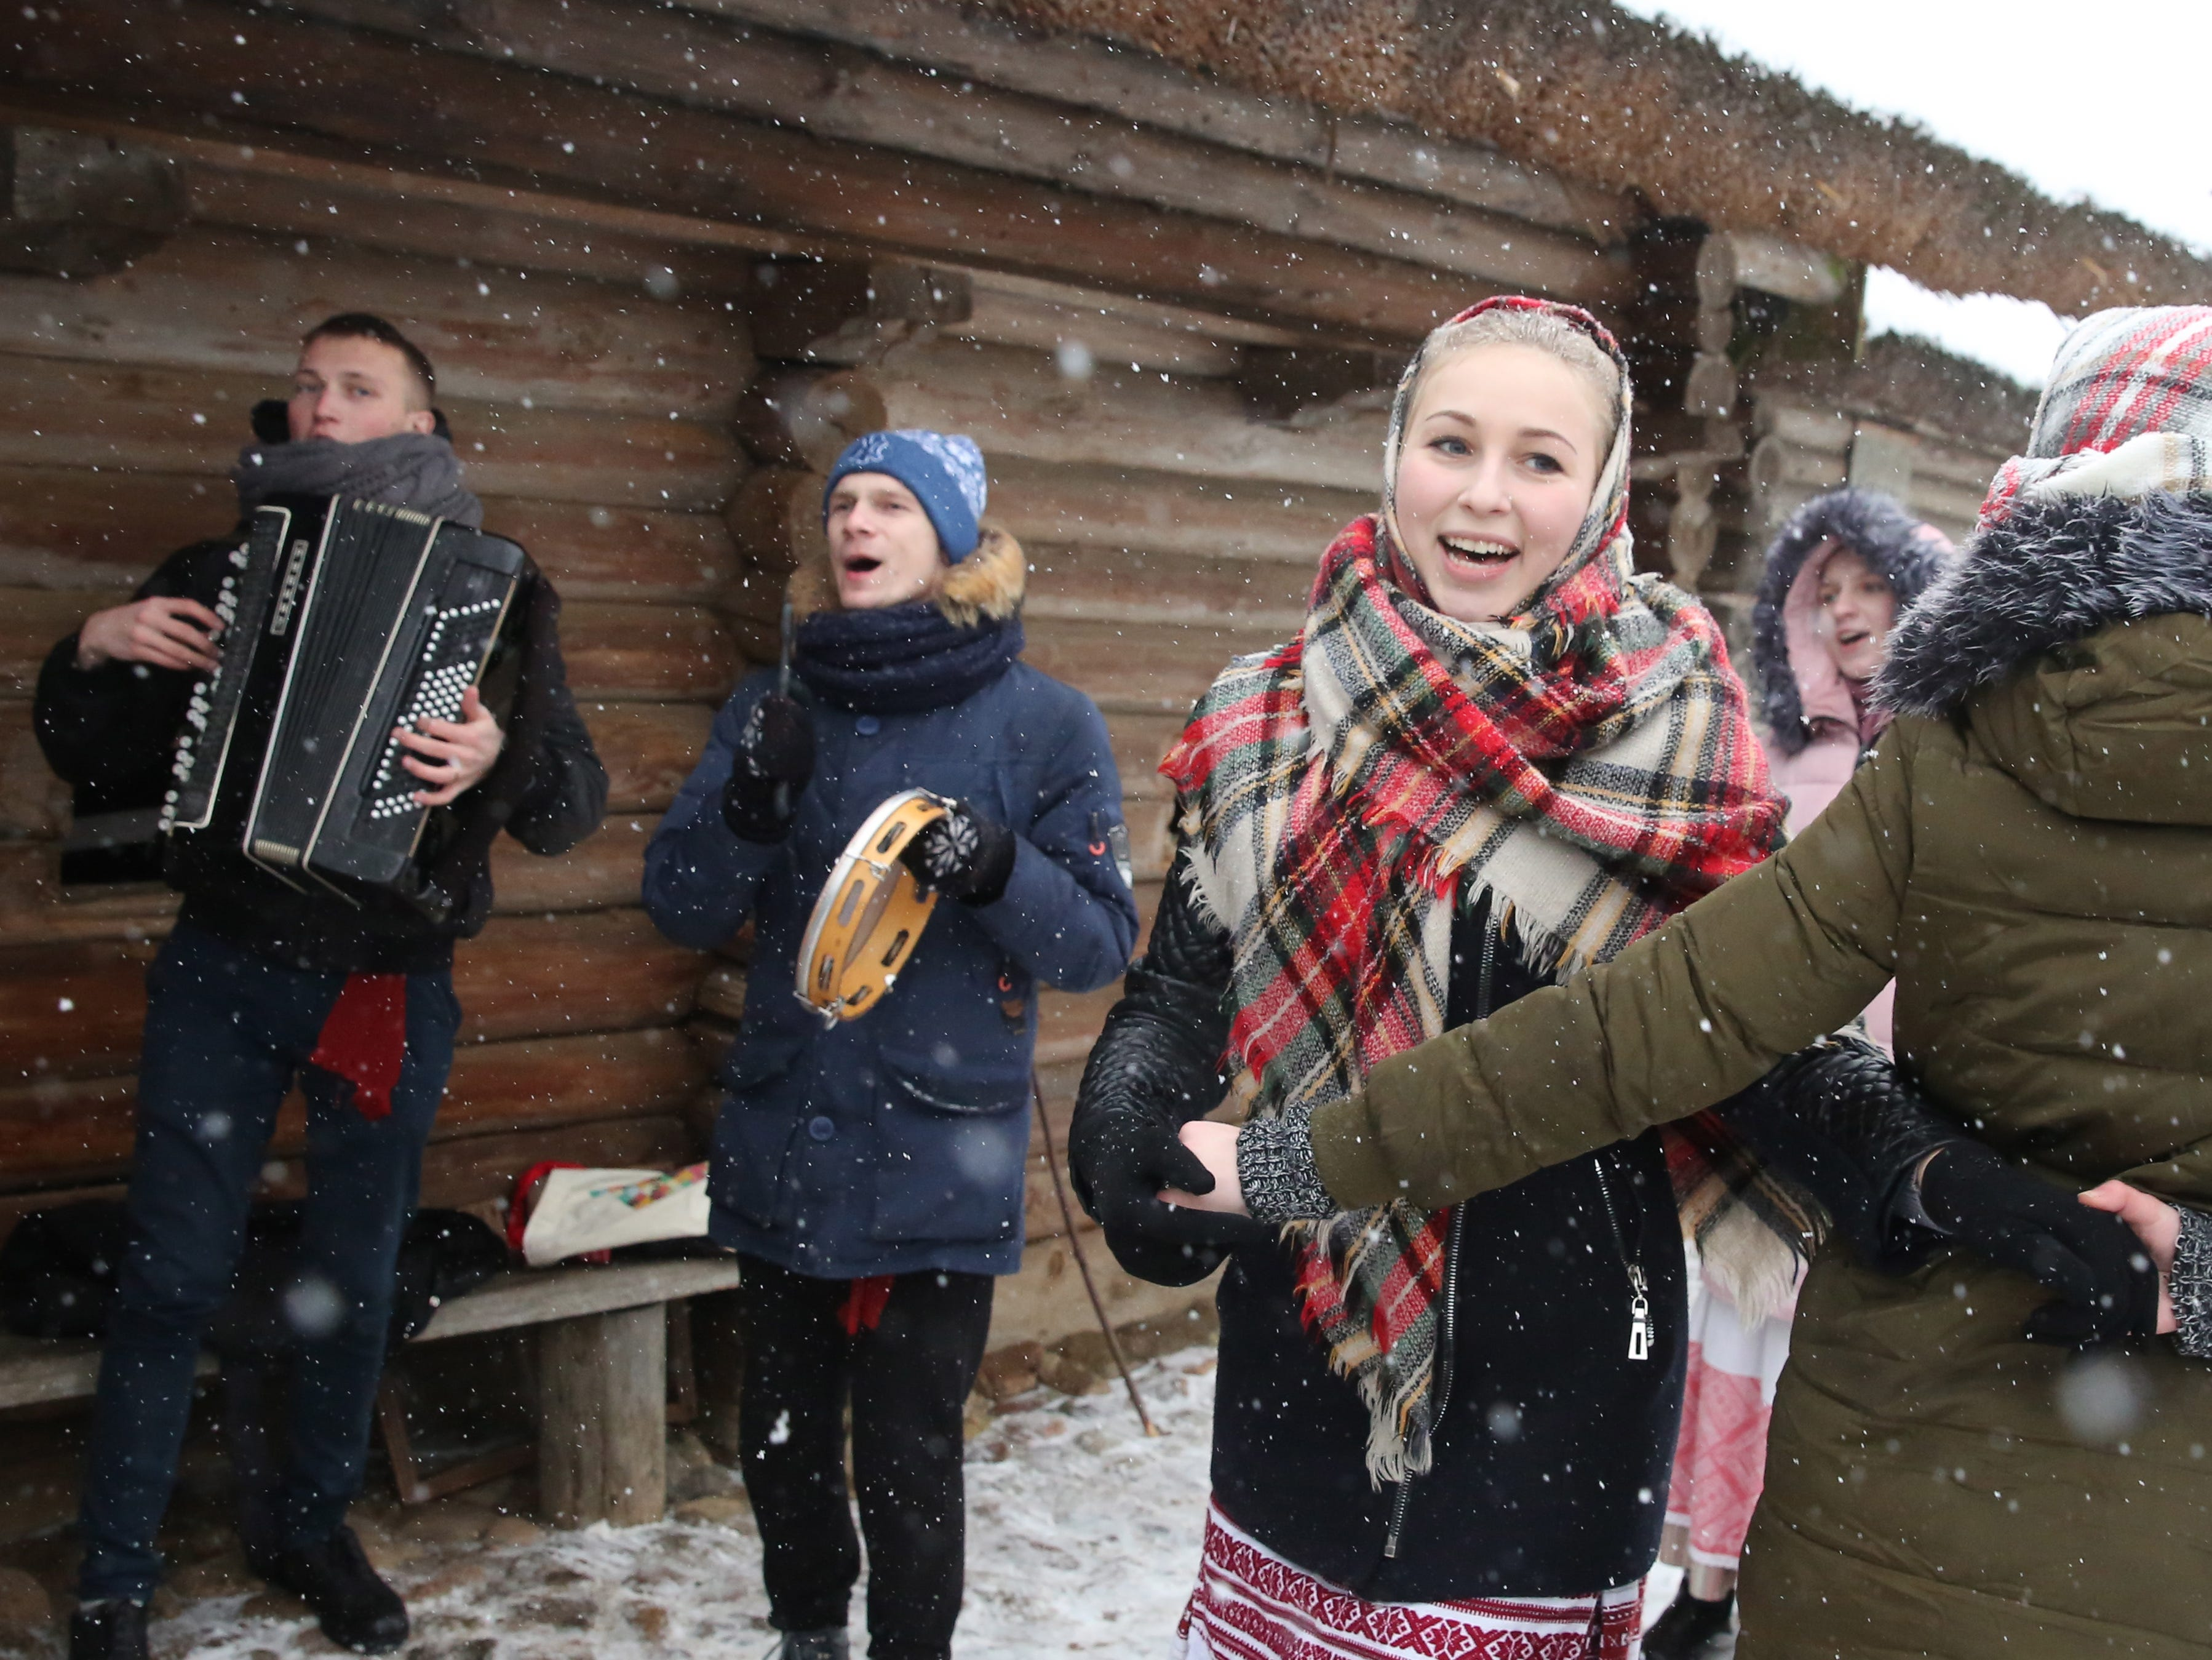 Belarussian artists wearing traditional costumes sing carol songs and dance during Koliady celebrations in the village of Ozertso.